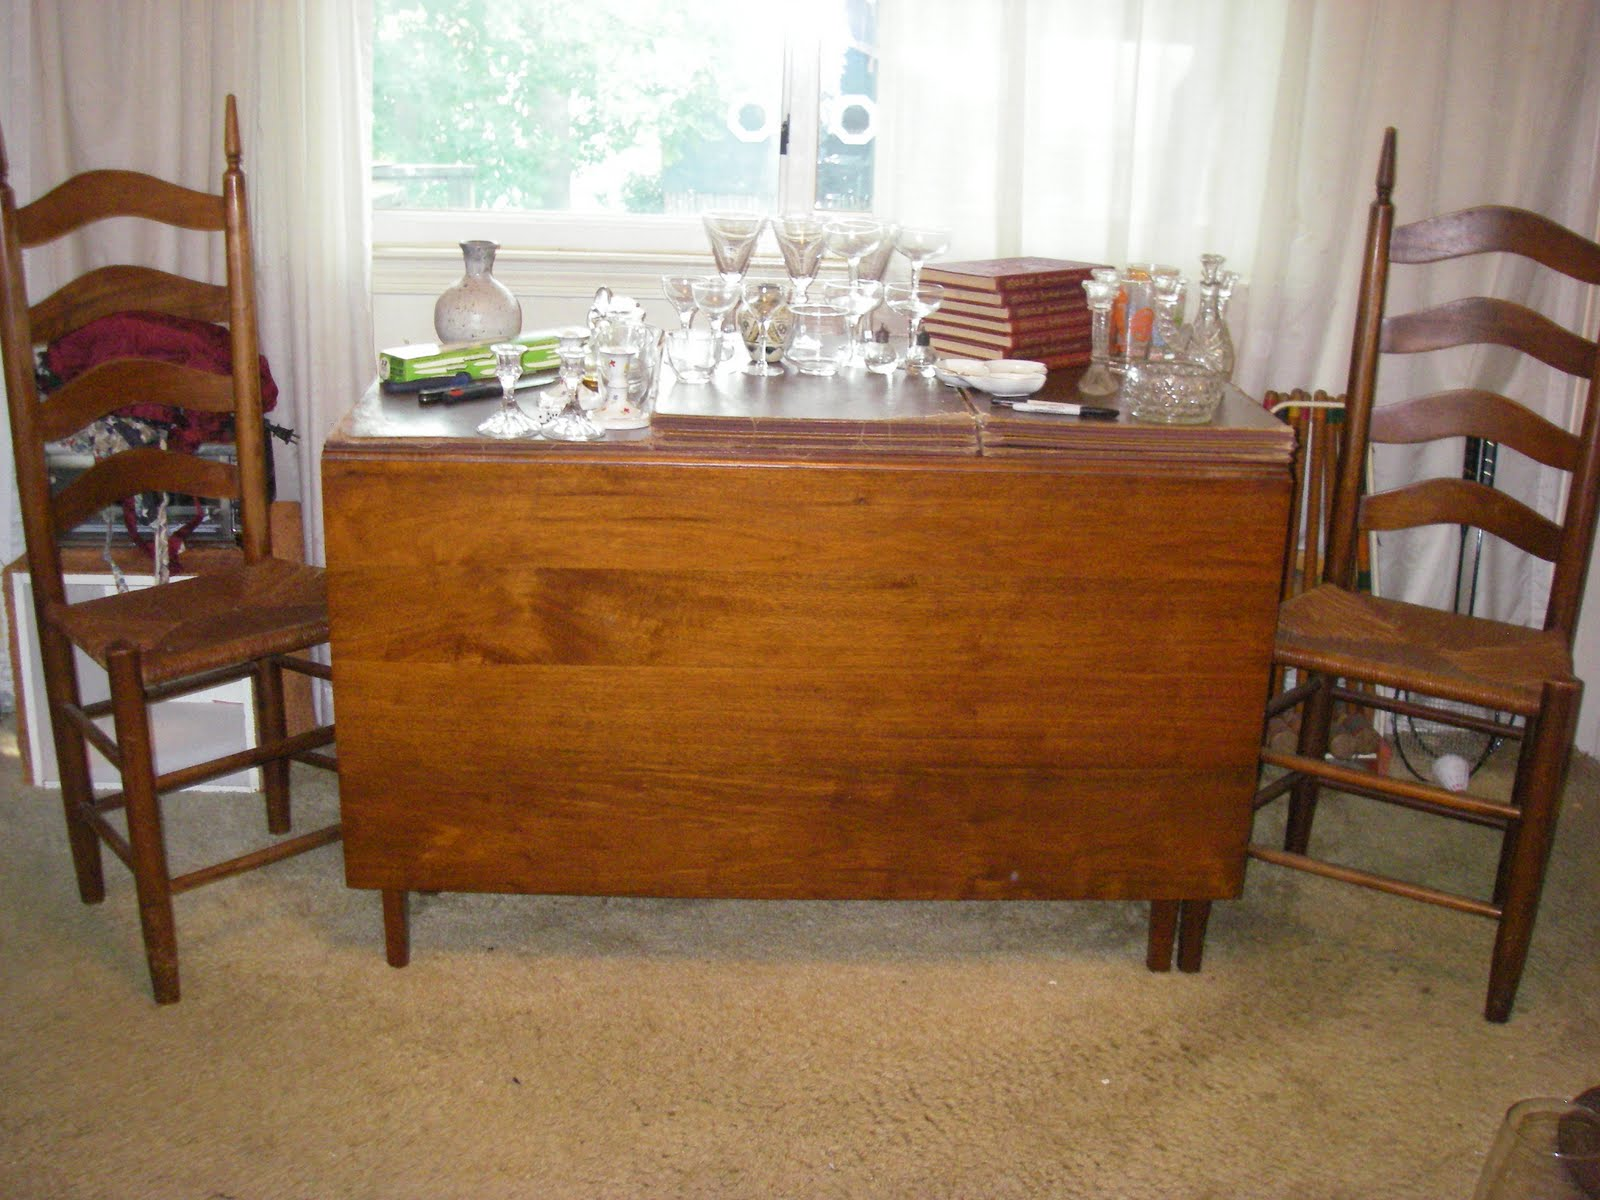 Yard sale furniture estate sale dining table solid for Furniture yard sale